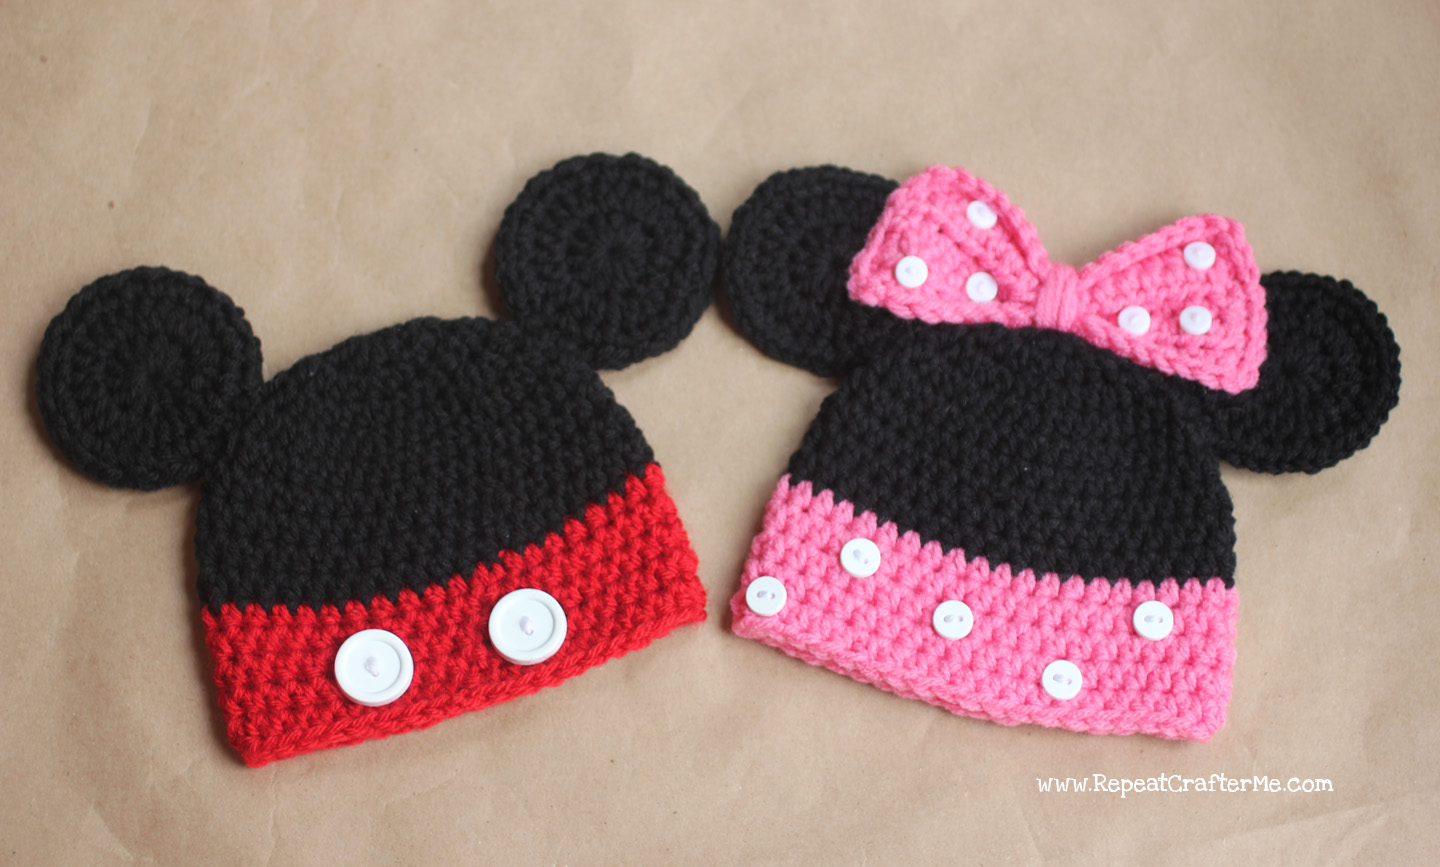 Mickey and Minnie Mouse Crochet Hat Pattern - Repeat Crafter Me d7c87f5aa55